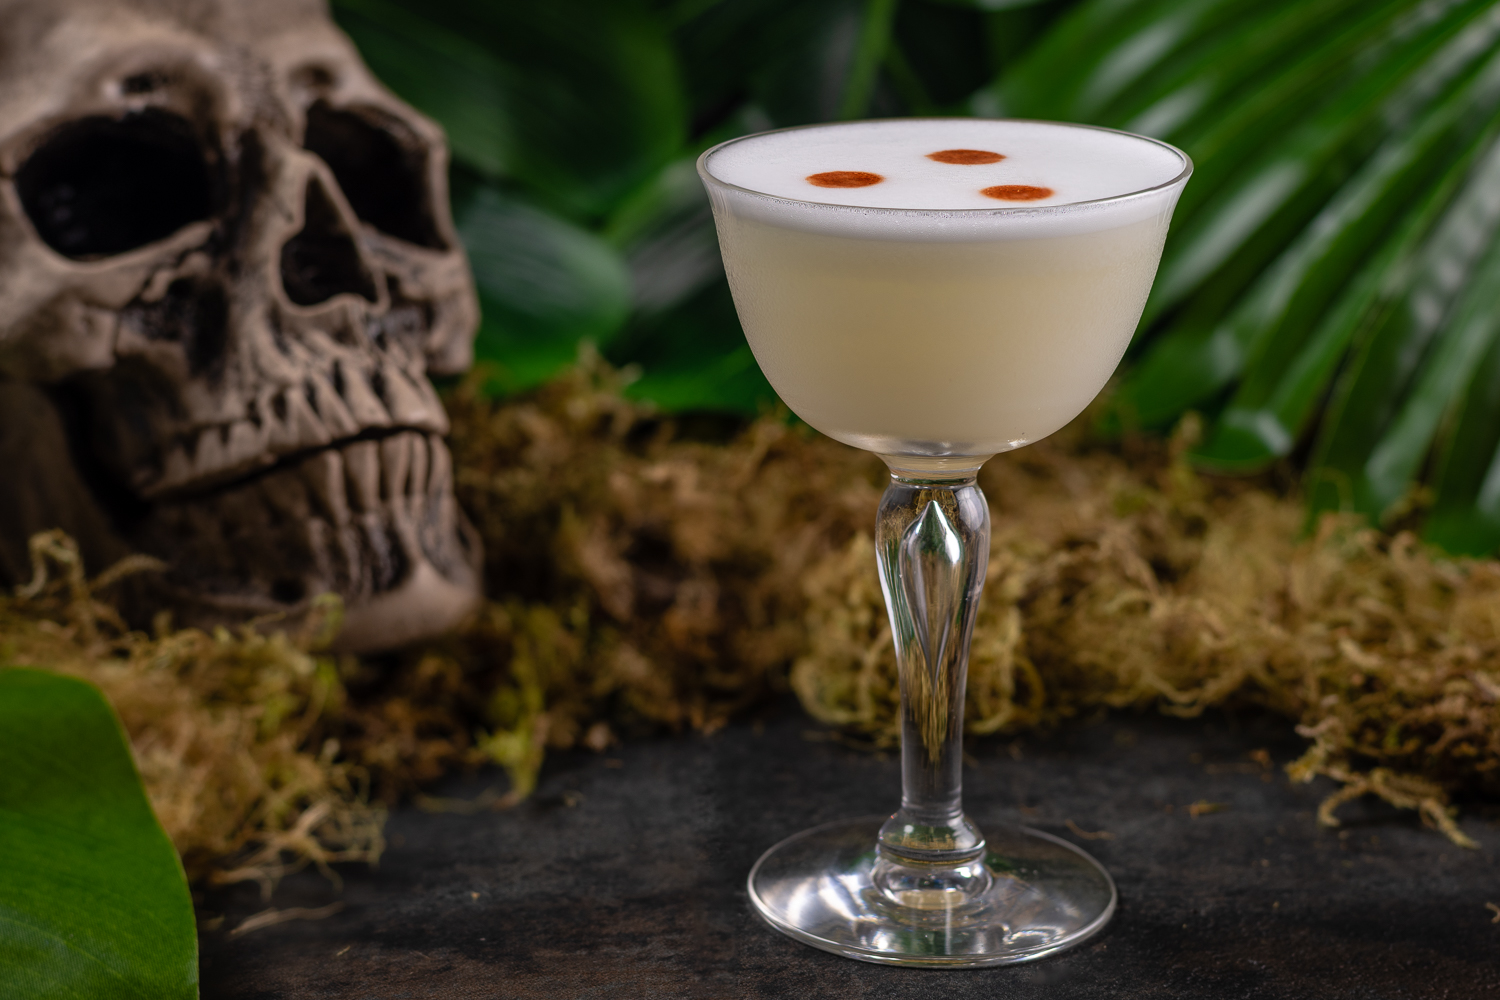 Cocktail Recipes | Cocktails | Themed Cocktails | The Geeks have modified the classic cocktail, the Pisco Sour, now calling it the 3 Dots Pisco Sour, inspired by The Predator. 2geekswhoeat.com